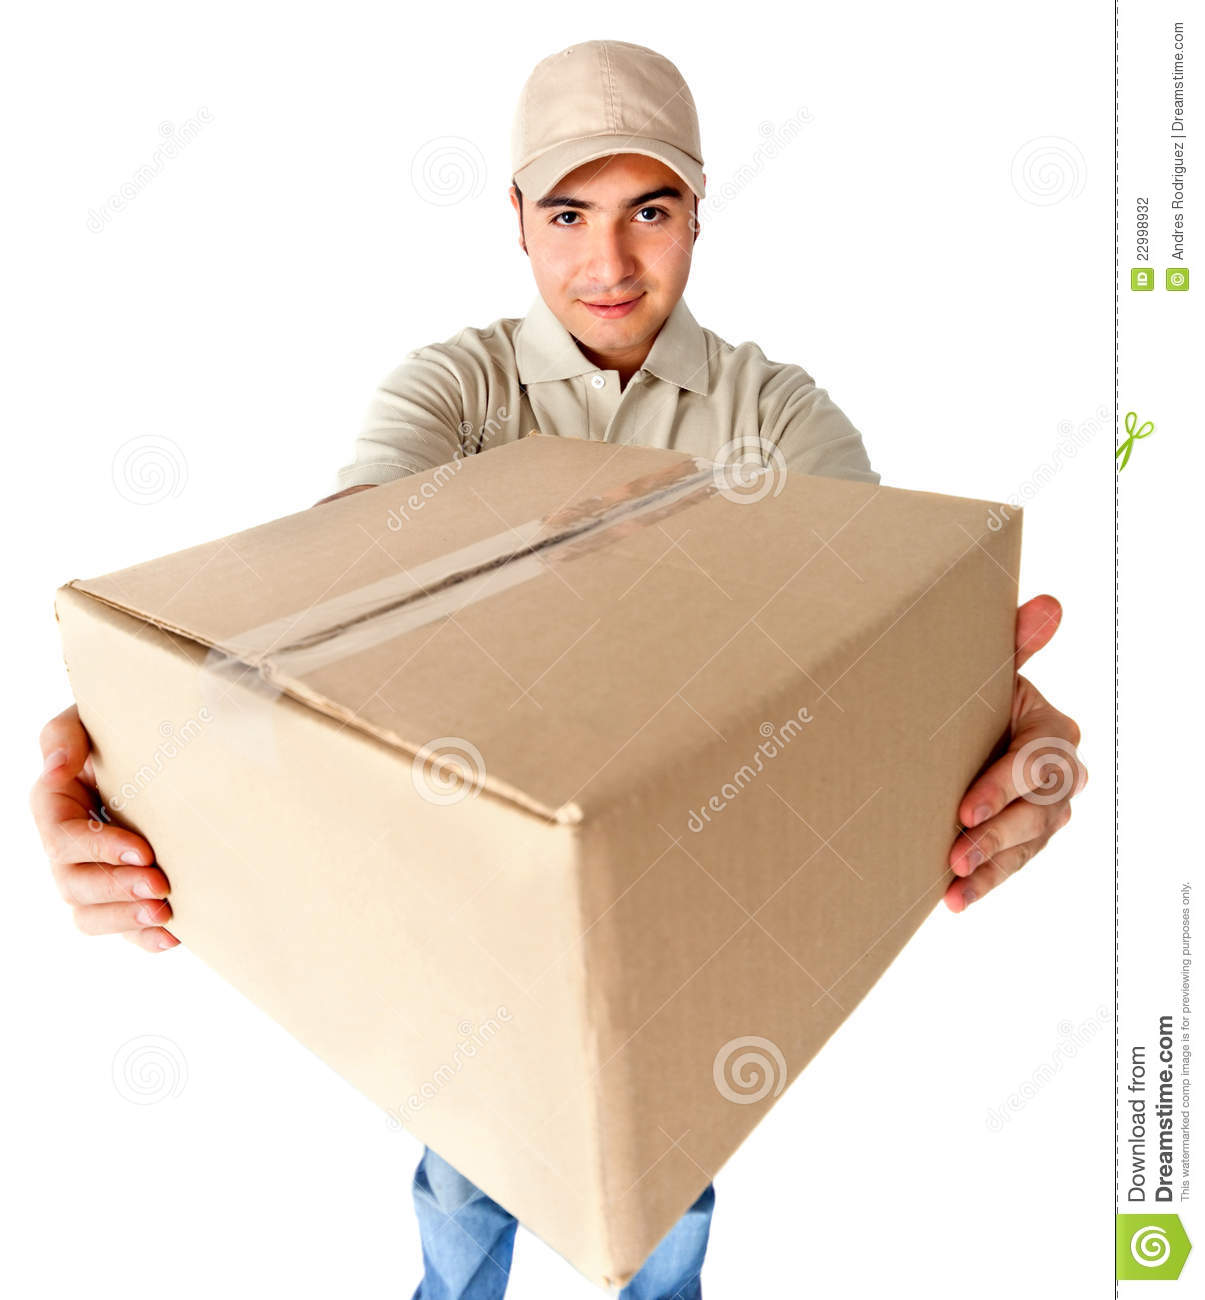 Flight And Car Packages: Delivering A Package Stock Photo. Image Of Post, Isolated